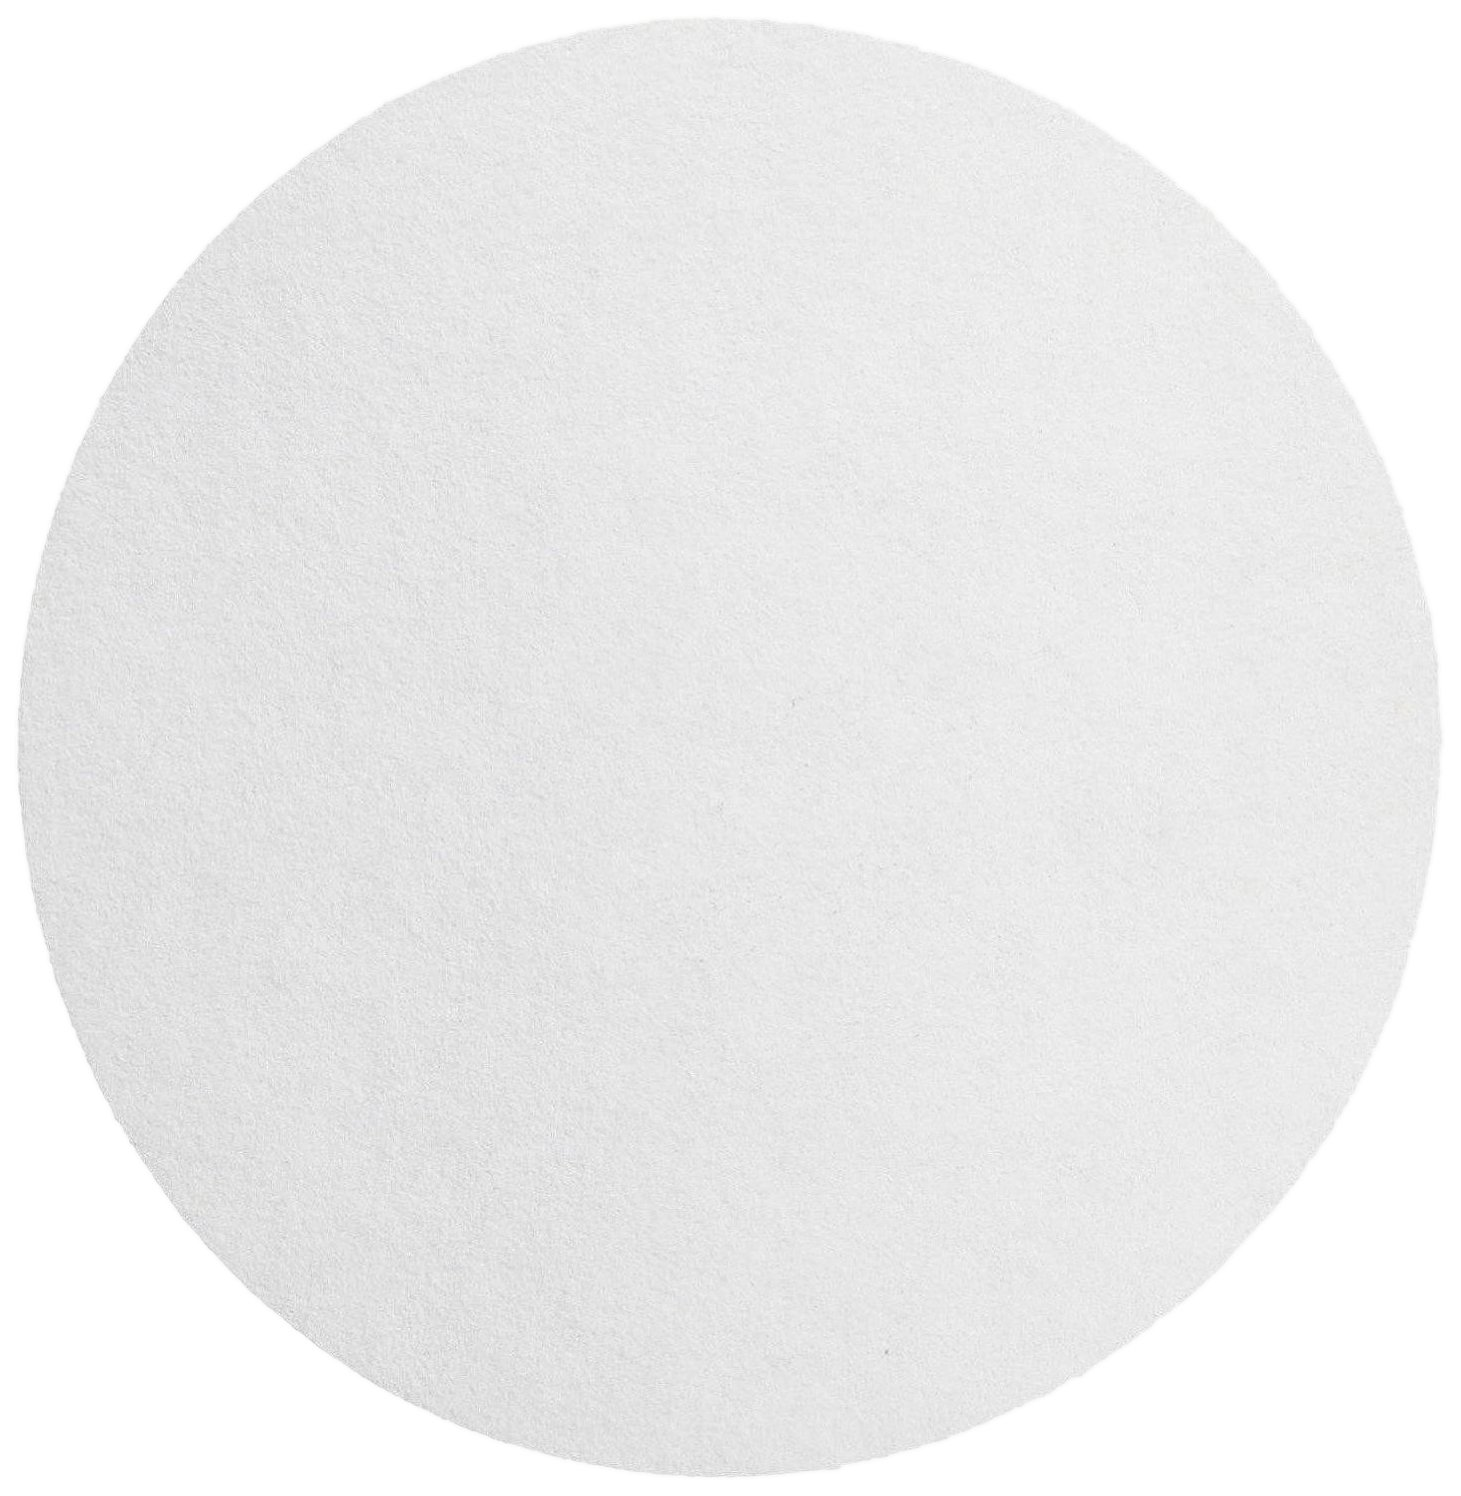 Ahlstrom 6420-0700 Eaton-Dike Filter paper, 2 Micron, Medium Flow, Grade 642, 7cm Diameter (Case of 100) 1218Z61PK